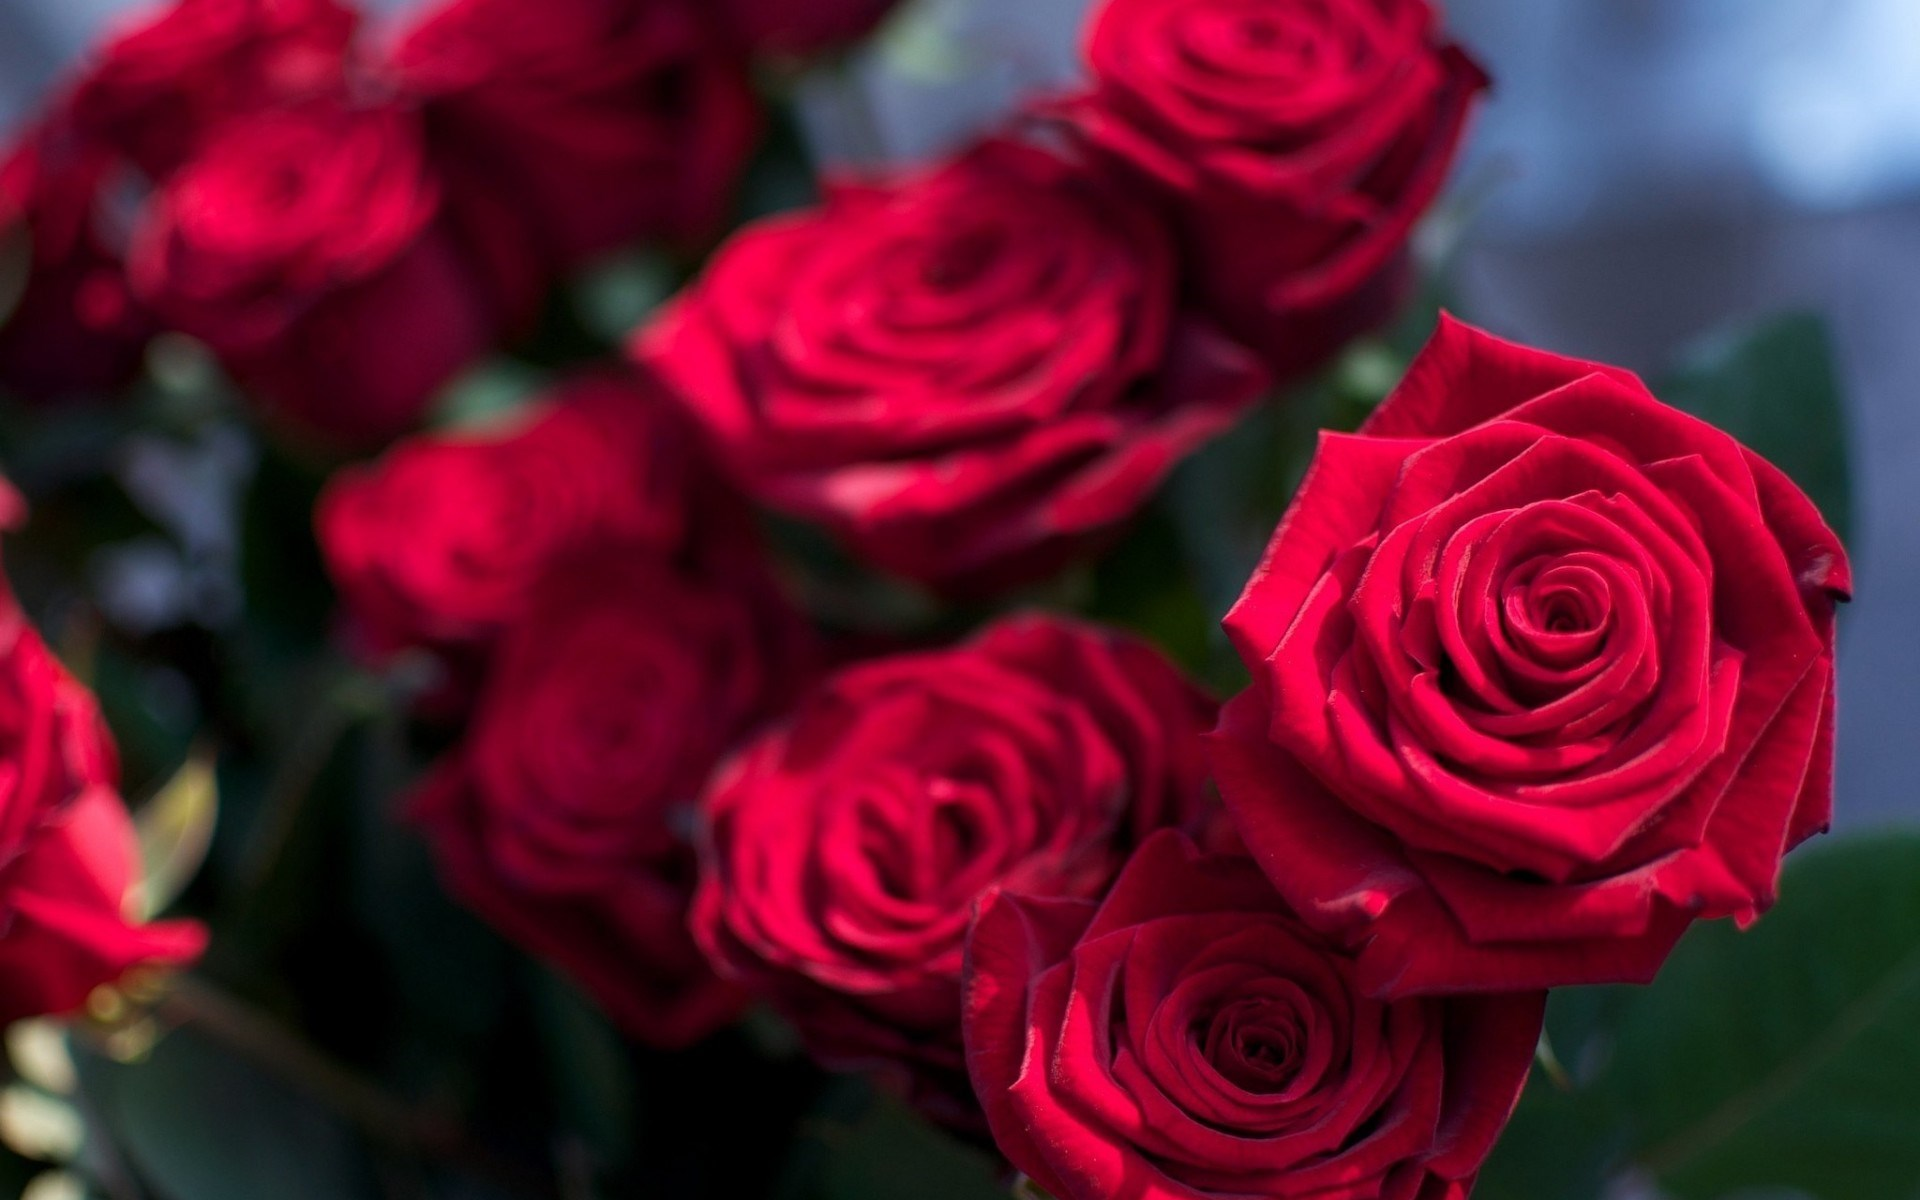 Roses Images Beautiful Roses Hd Wallpaper And Background Photos